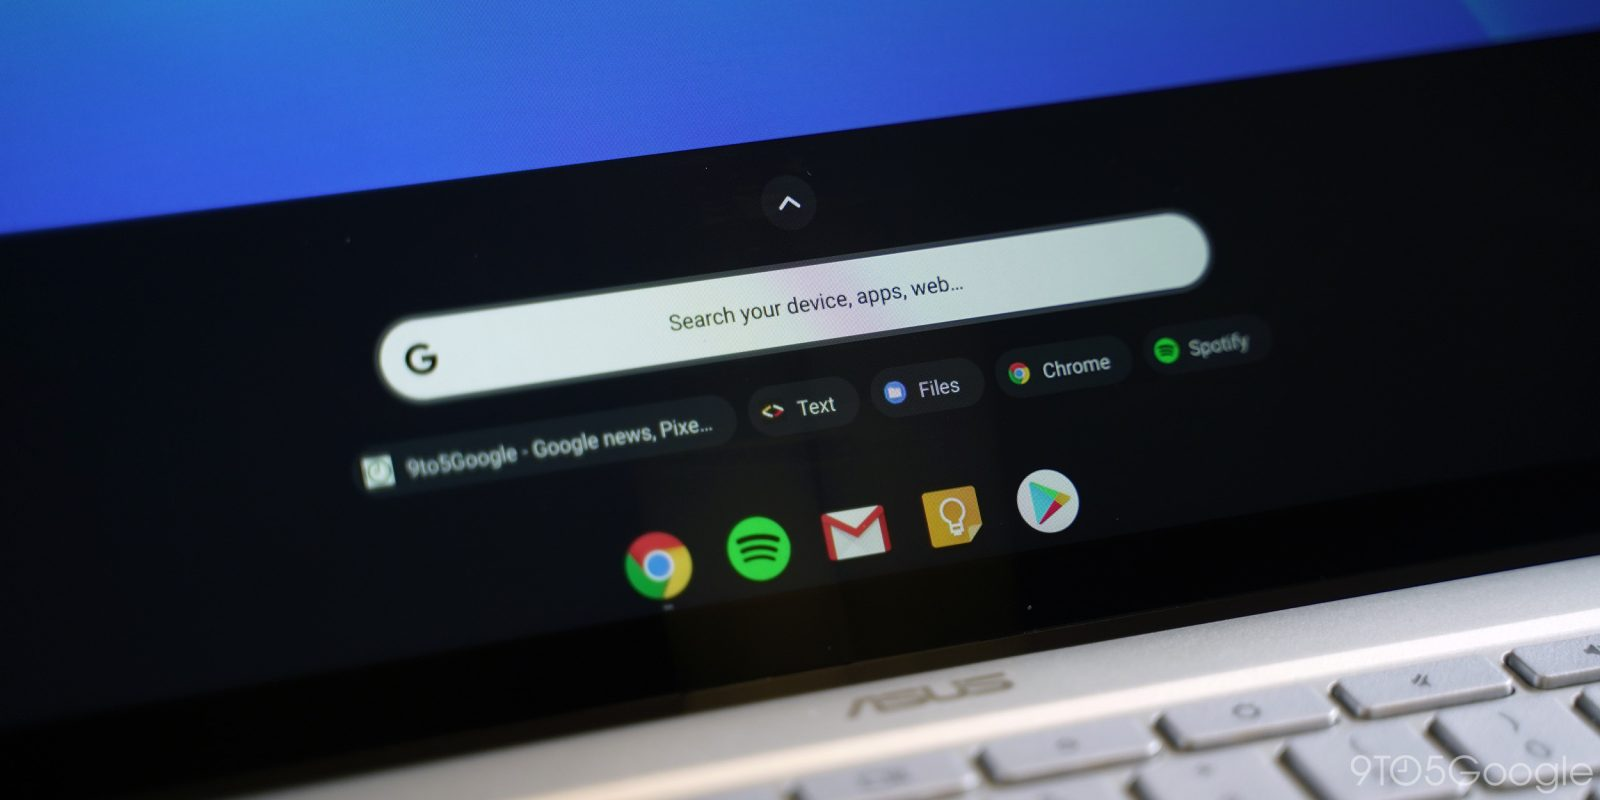 Chrome Duplex's bottom toolbar redesign gains several shortcuts in